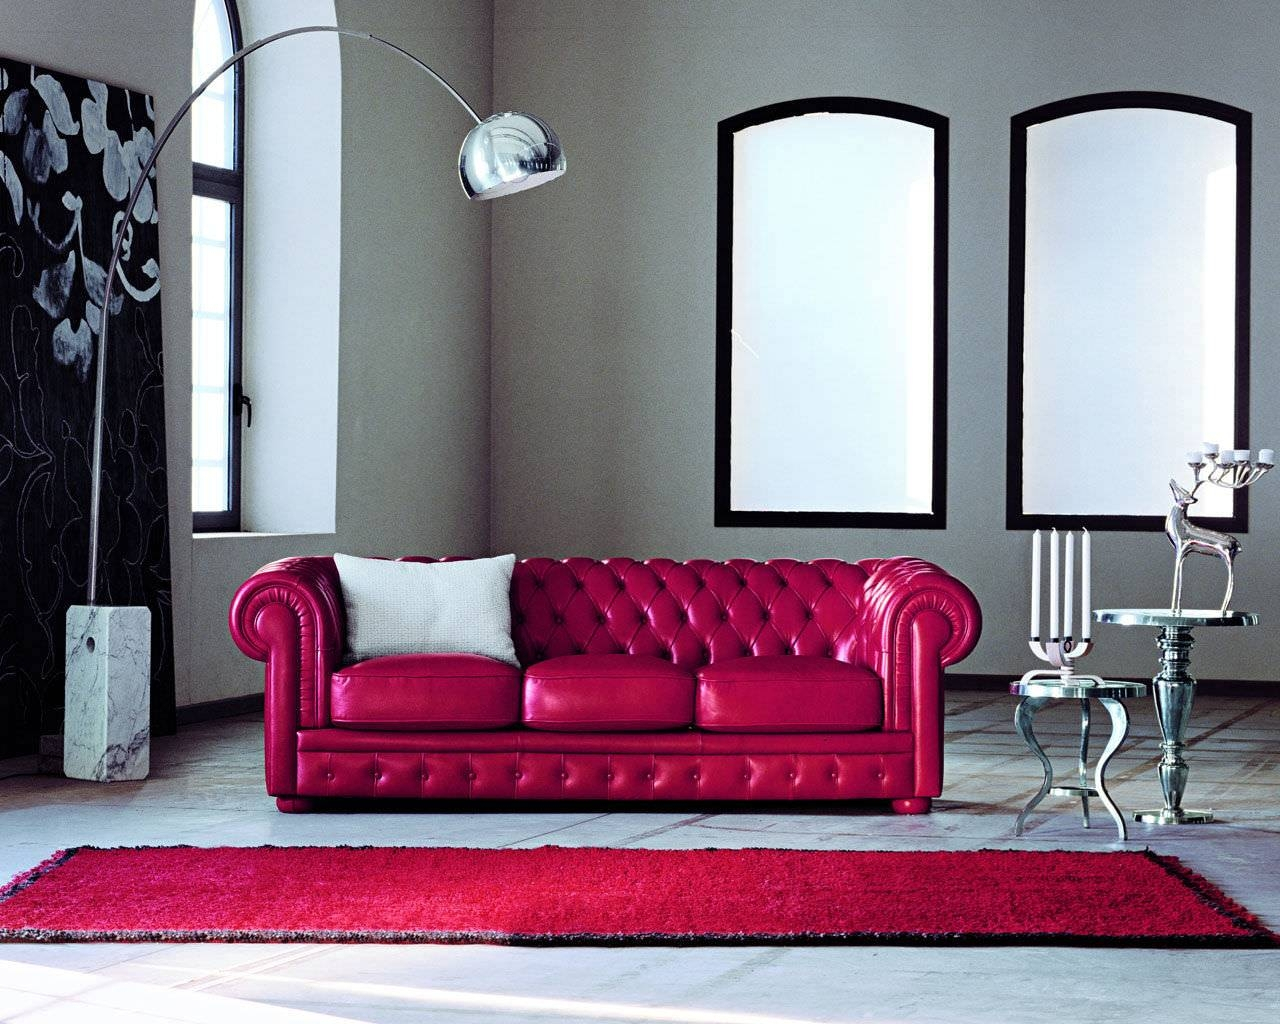 Chesterfield Sofa / Leather / 3-Seater / Red - Alioth - Doimo Sofas pertaining to Red Leather Chesterfield Sofas (Image 4 of 15)